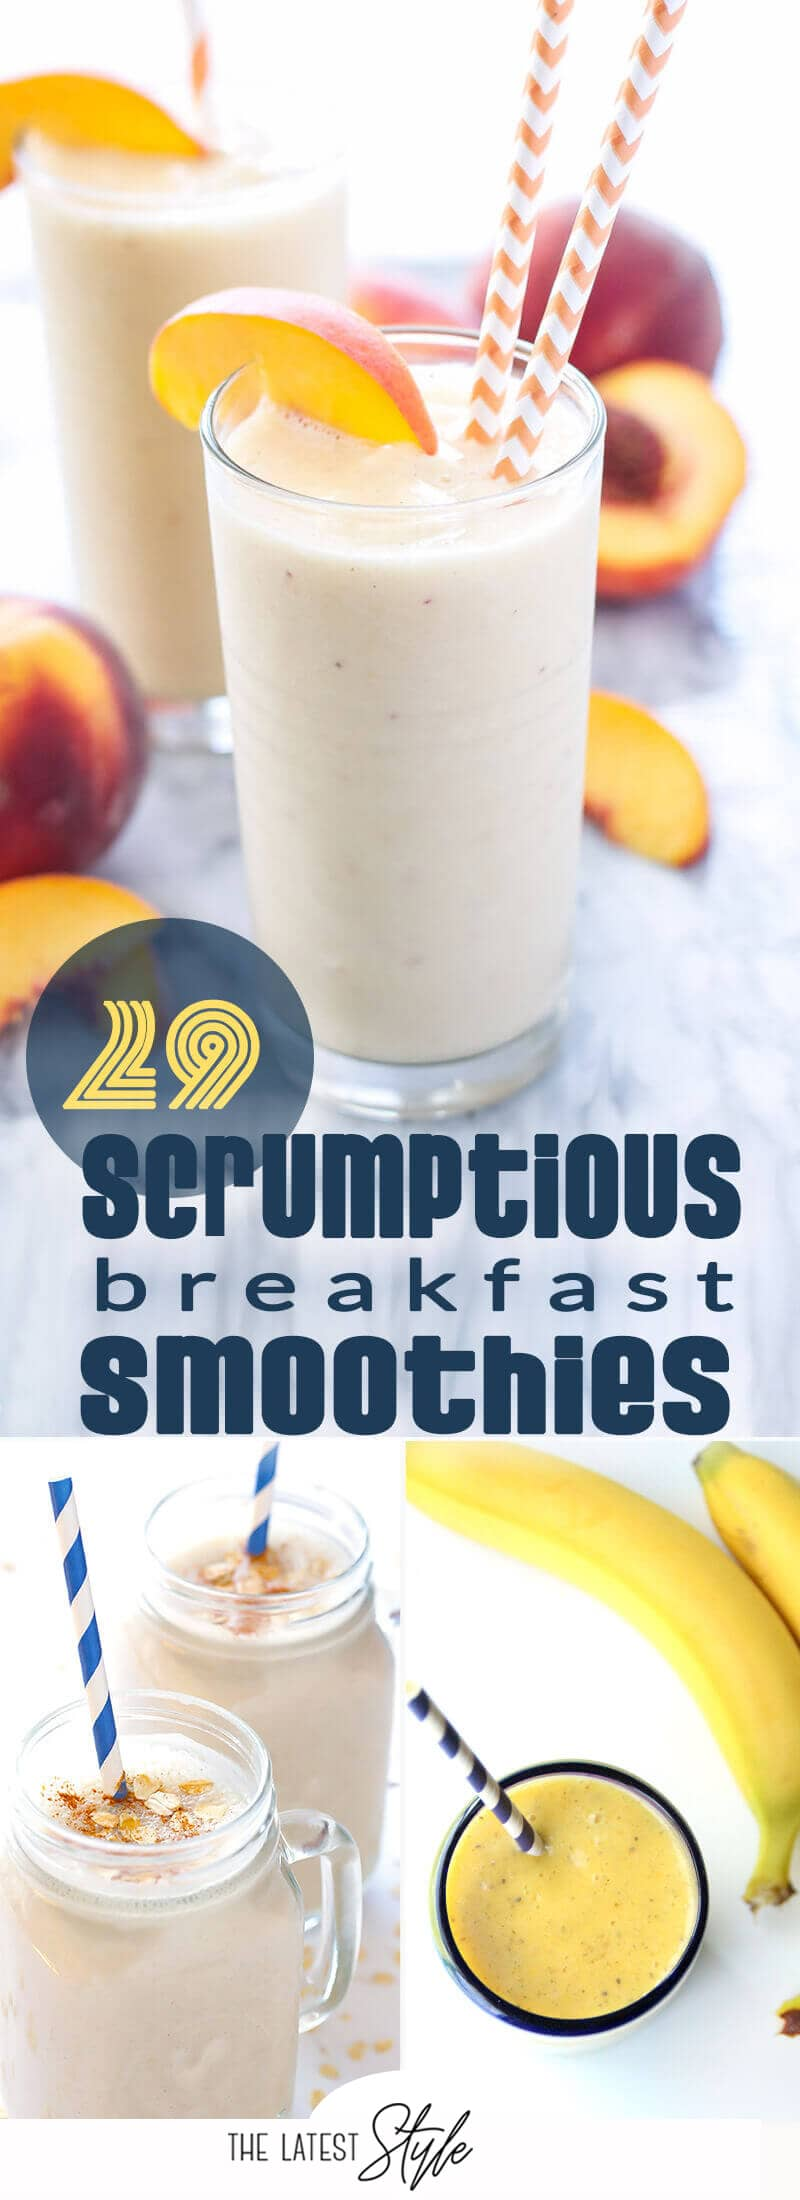 29 Breakfast Smoothie Recipes for a Delightfully Smooth Day